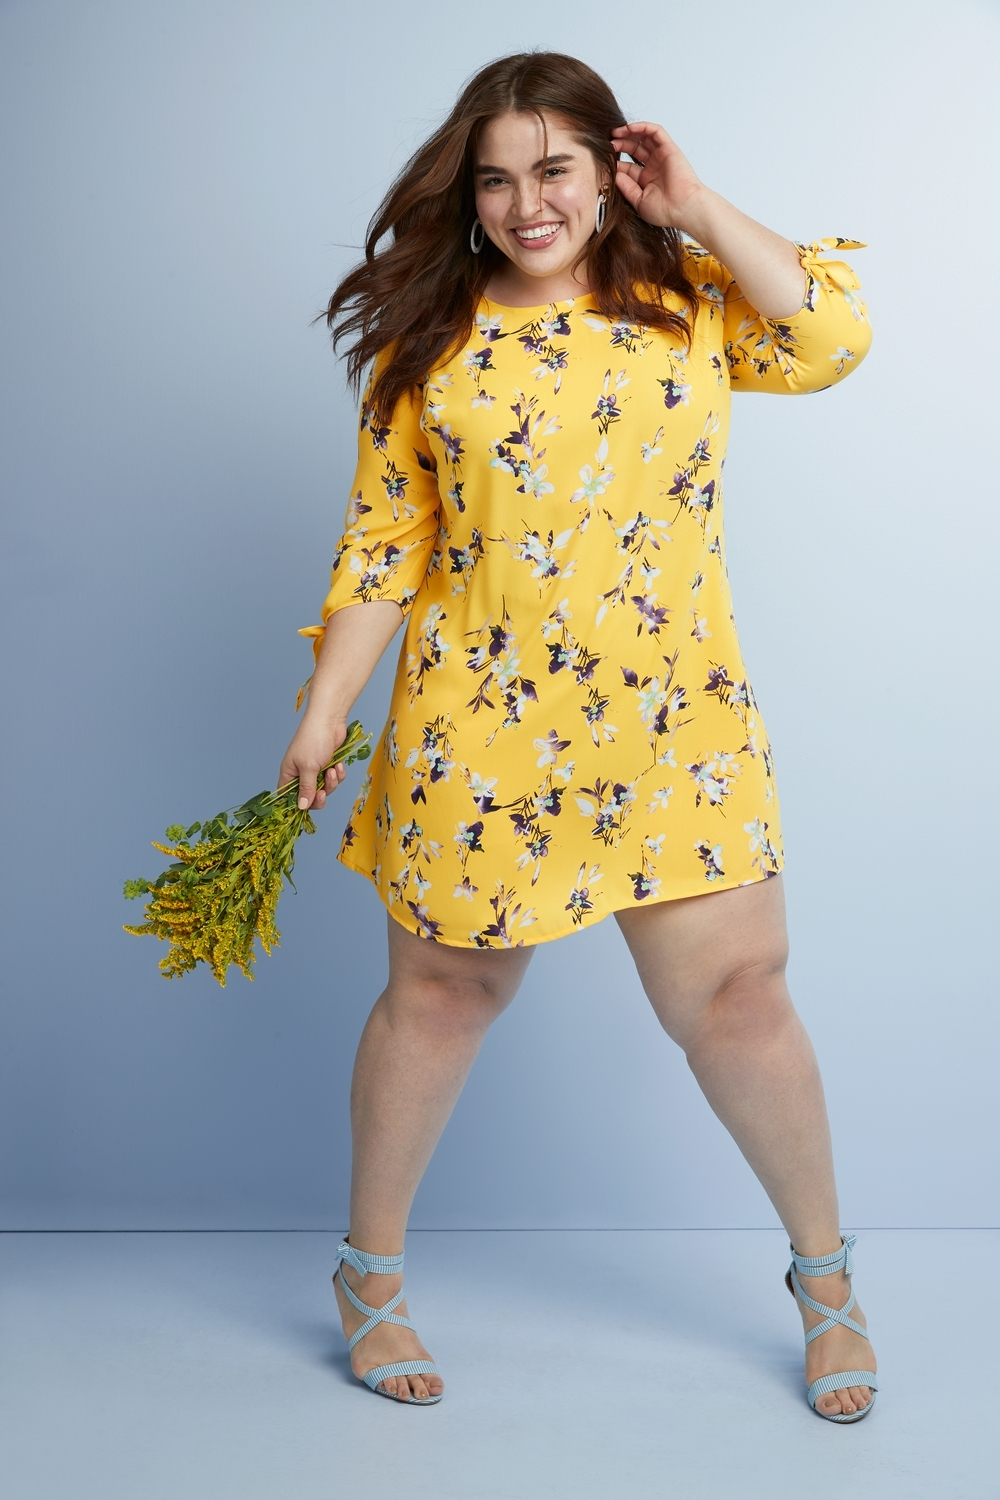 a0a6ac450192c The Scoop  Kohl s Launches NEW Women s Plus Size Brand- EVRI!